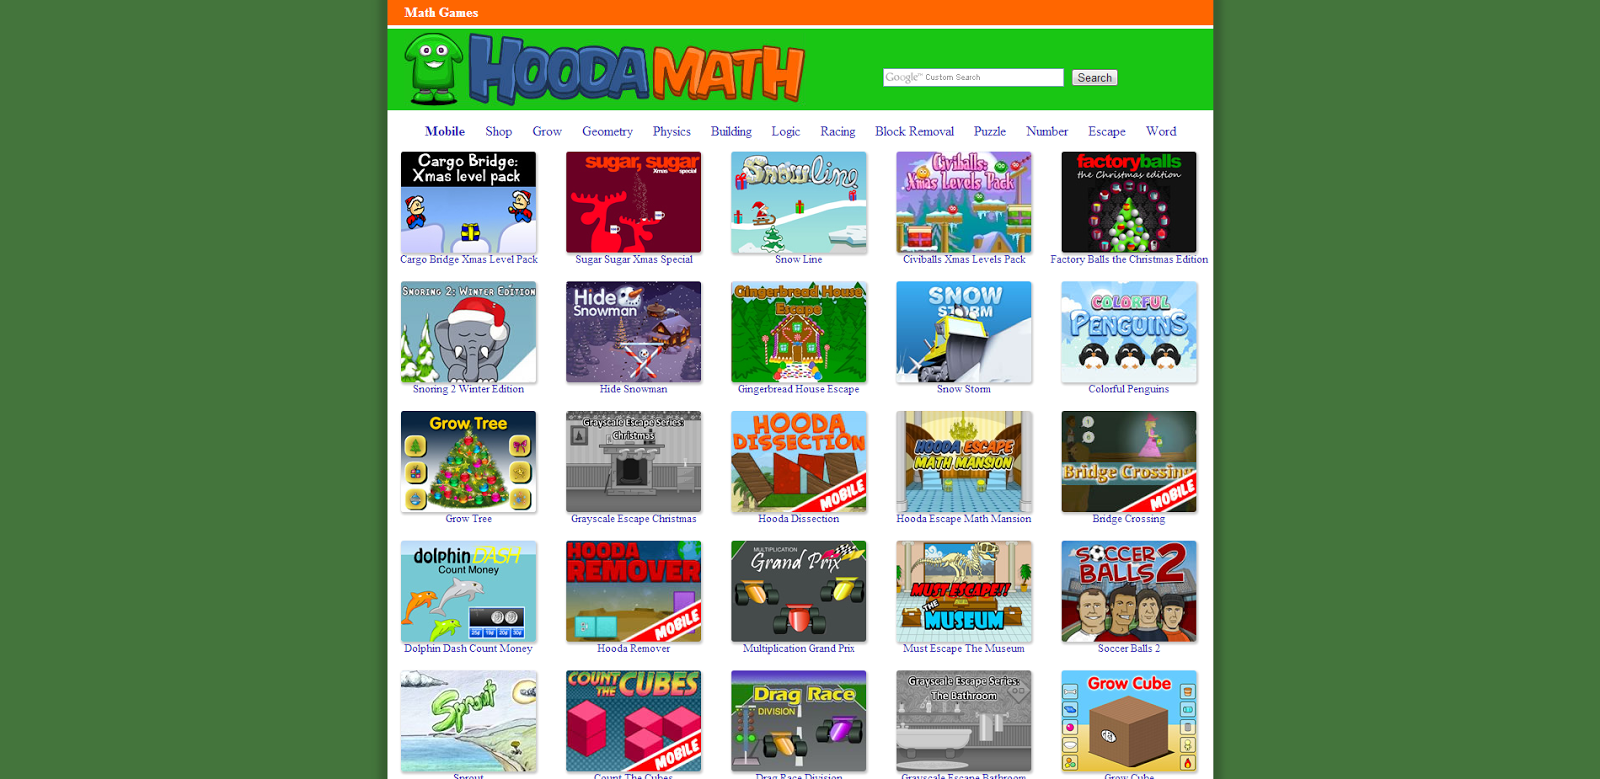 Hooda math games math games hooda math over 400 math games png